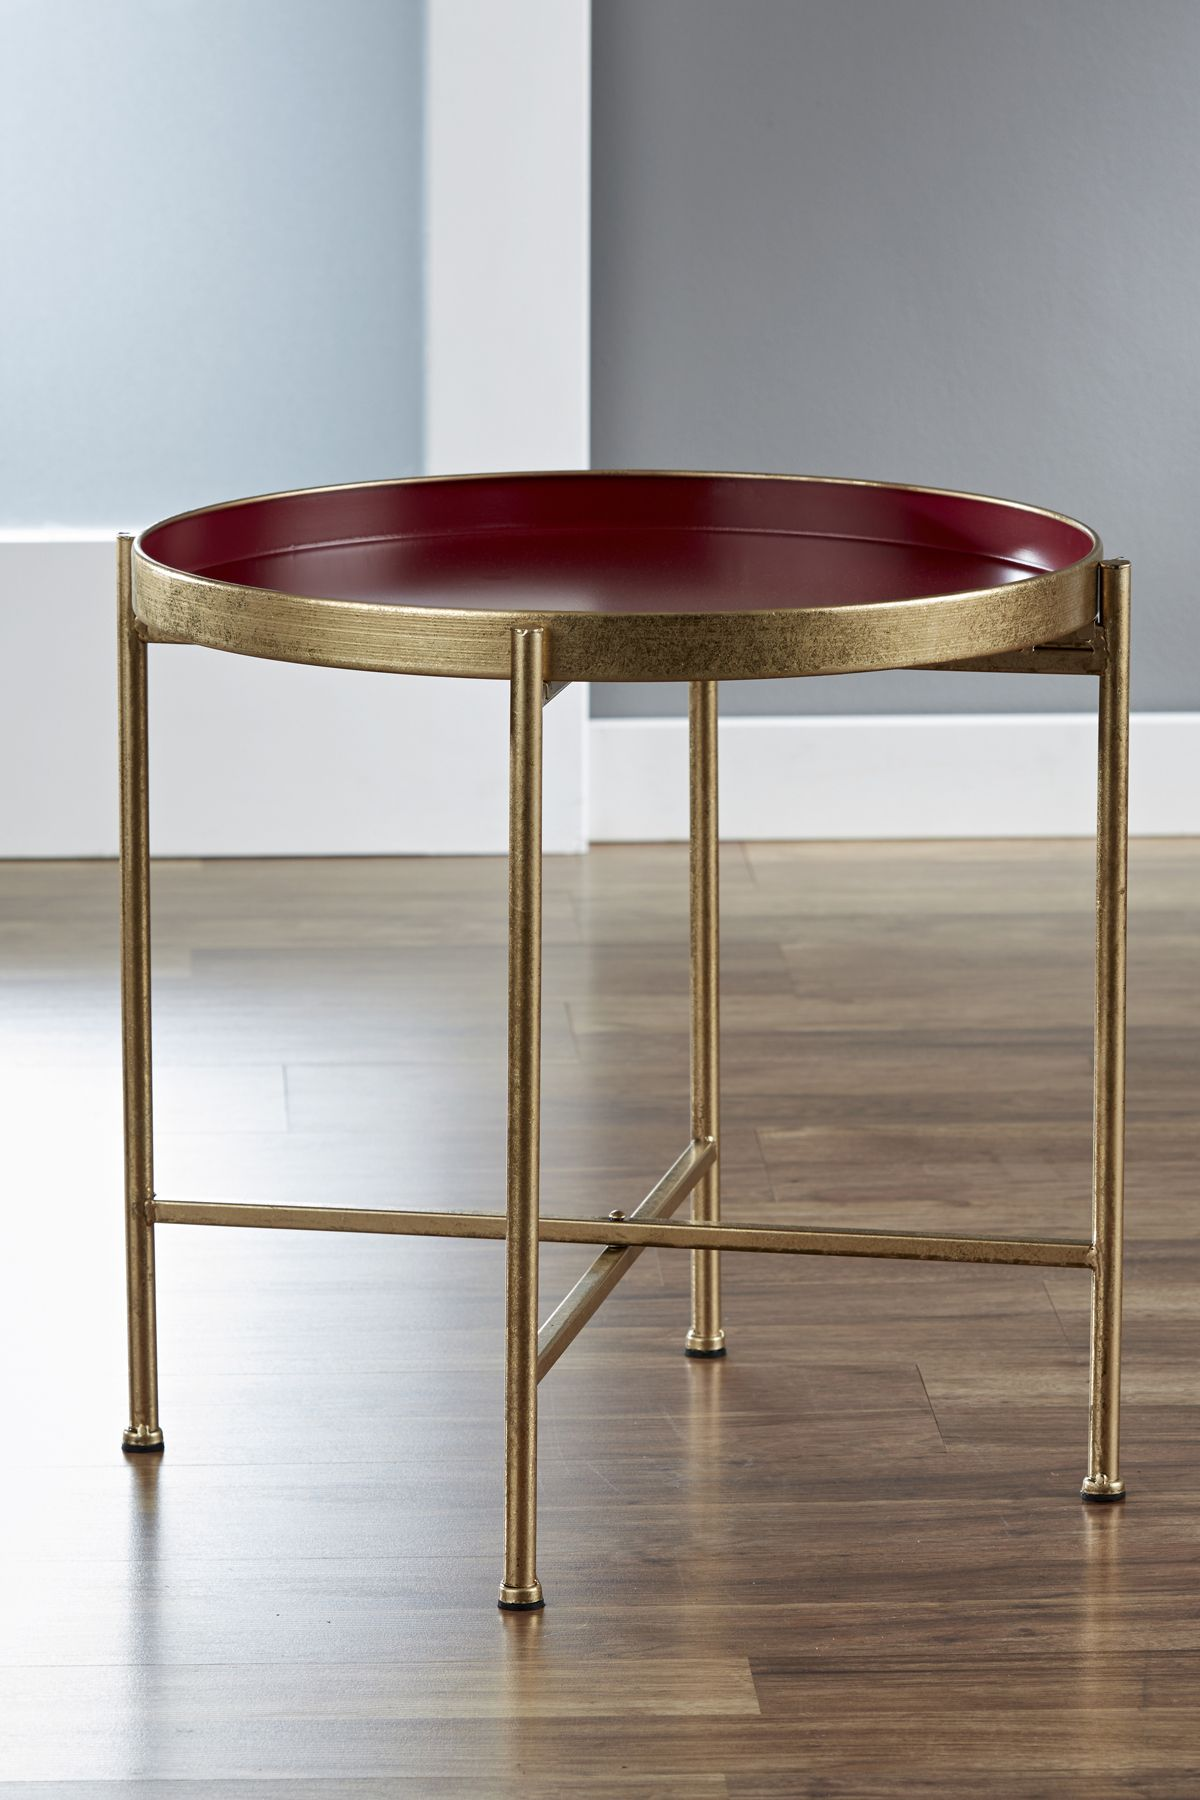 InnerSpace Pop Up Tray Table in Red